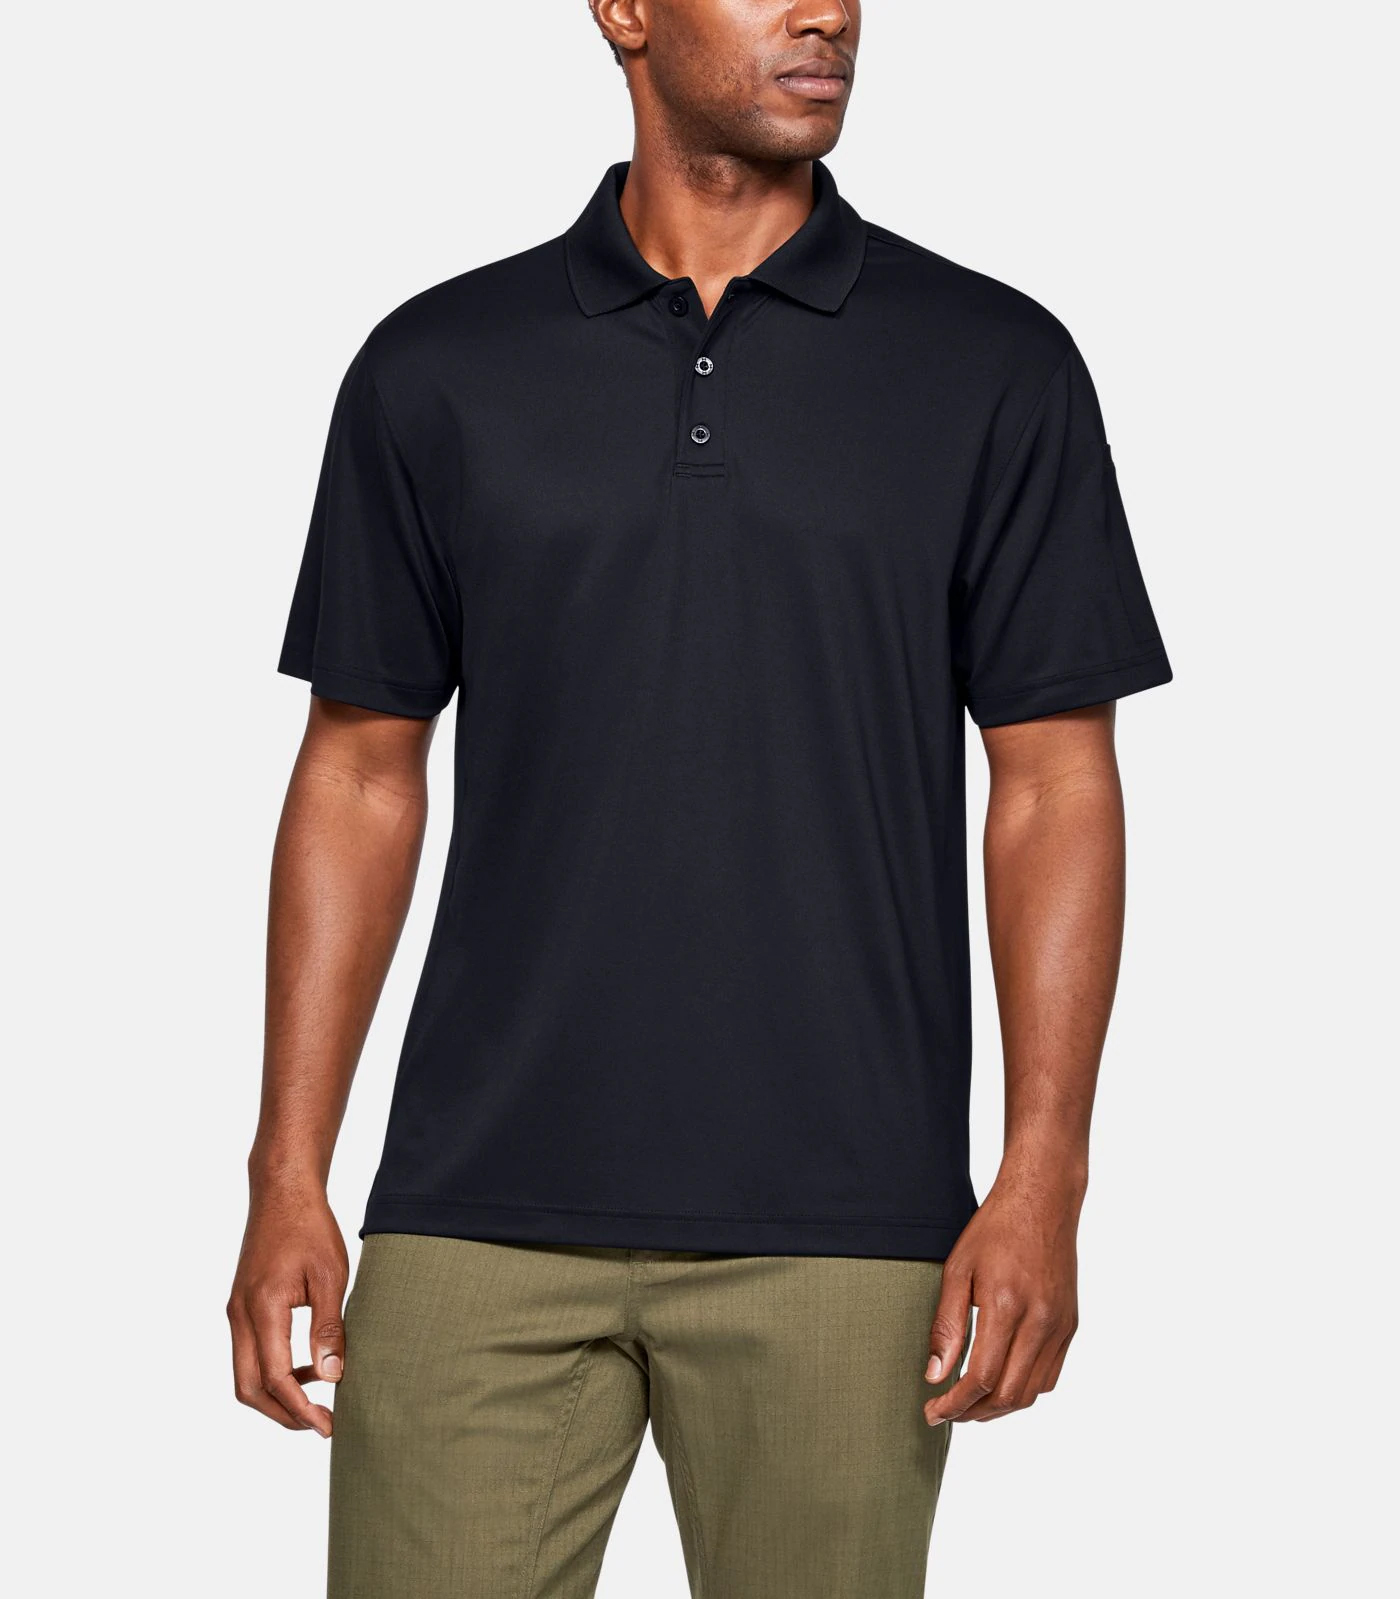 MENS_POLO_TacPerformance-SS_UAR1279759001_08